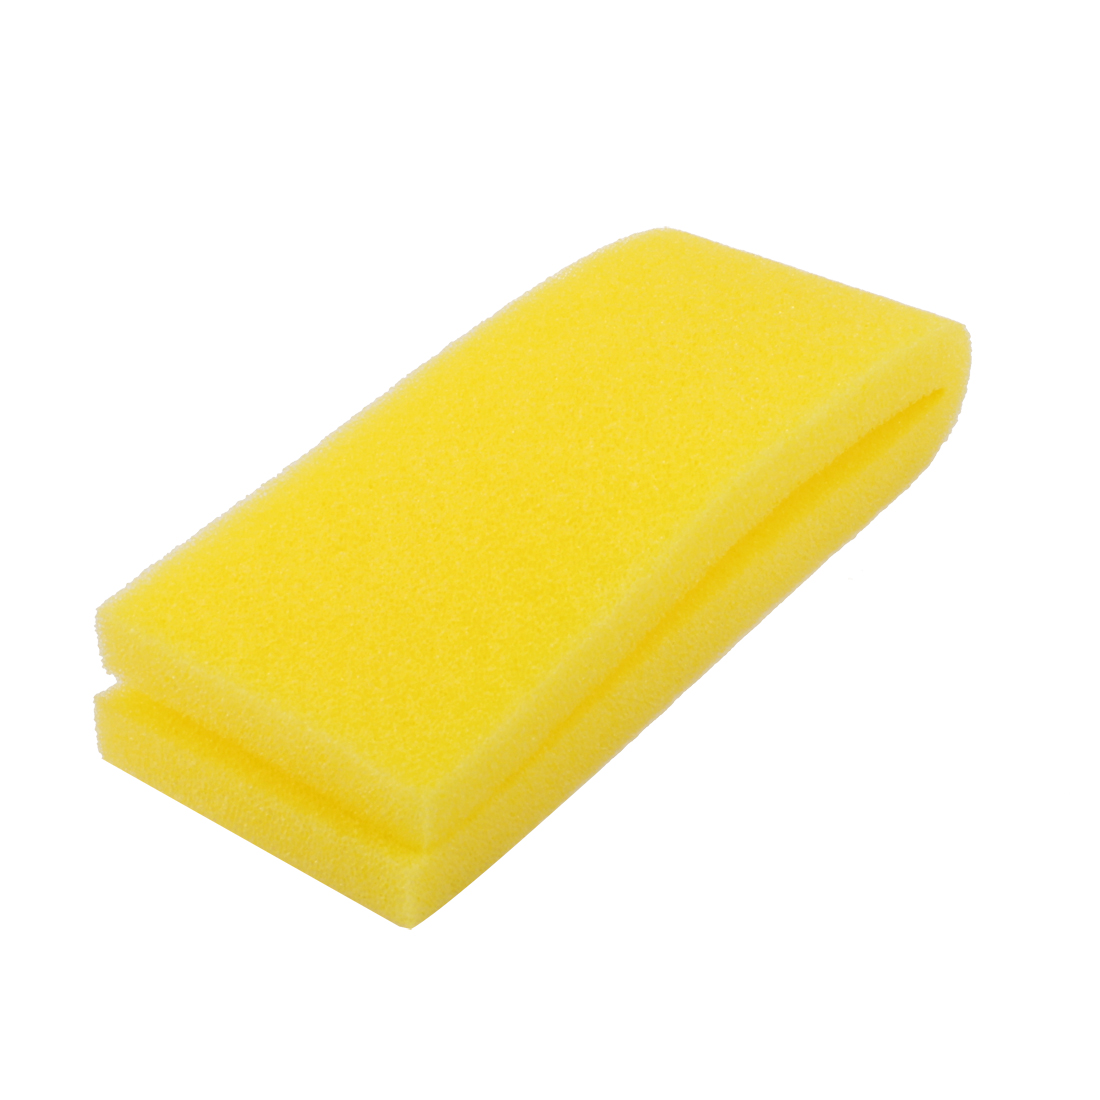 Fish Tank Rectangle Shaped Biochemical Recycling Filter Sponge for Fresh Water Aquarium Yellow